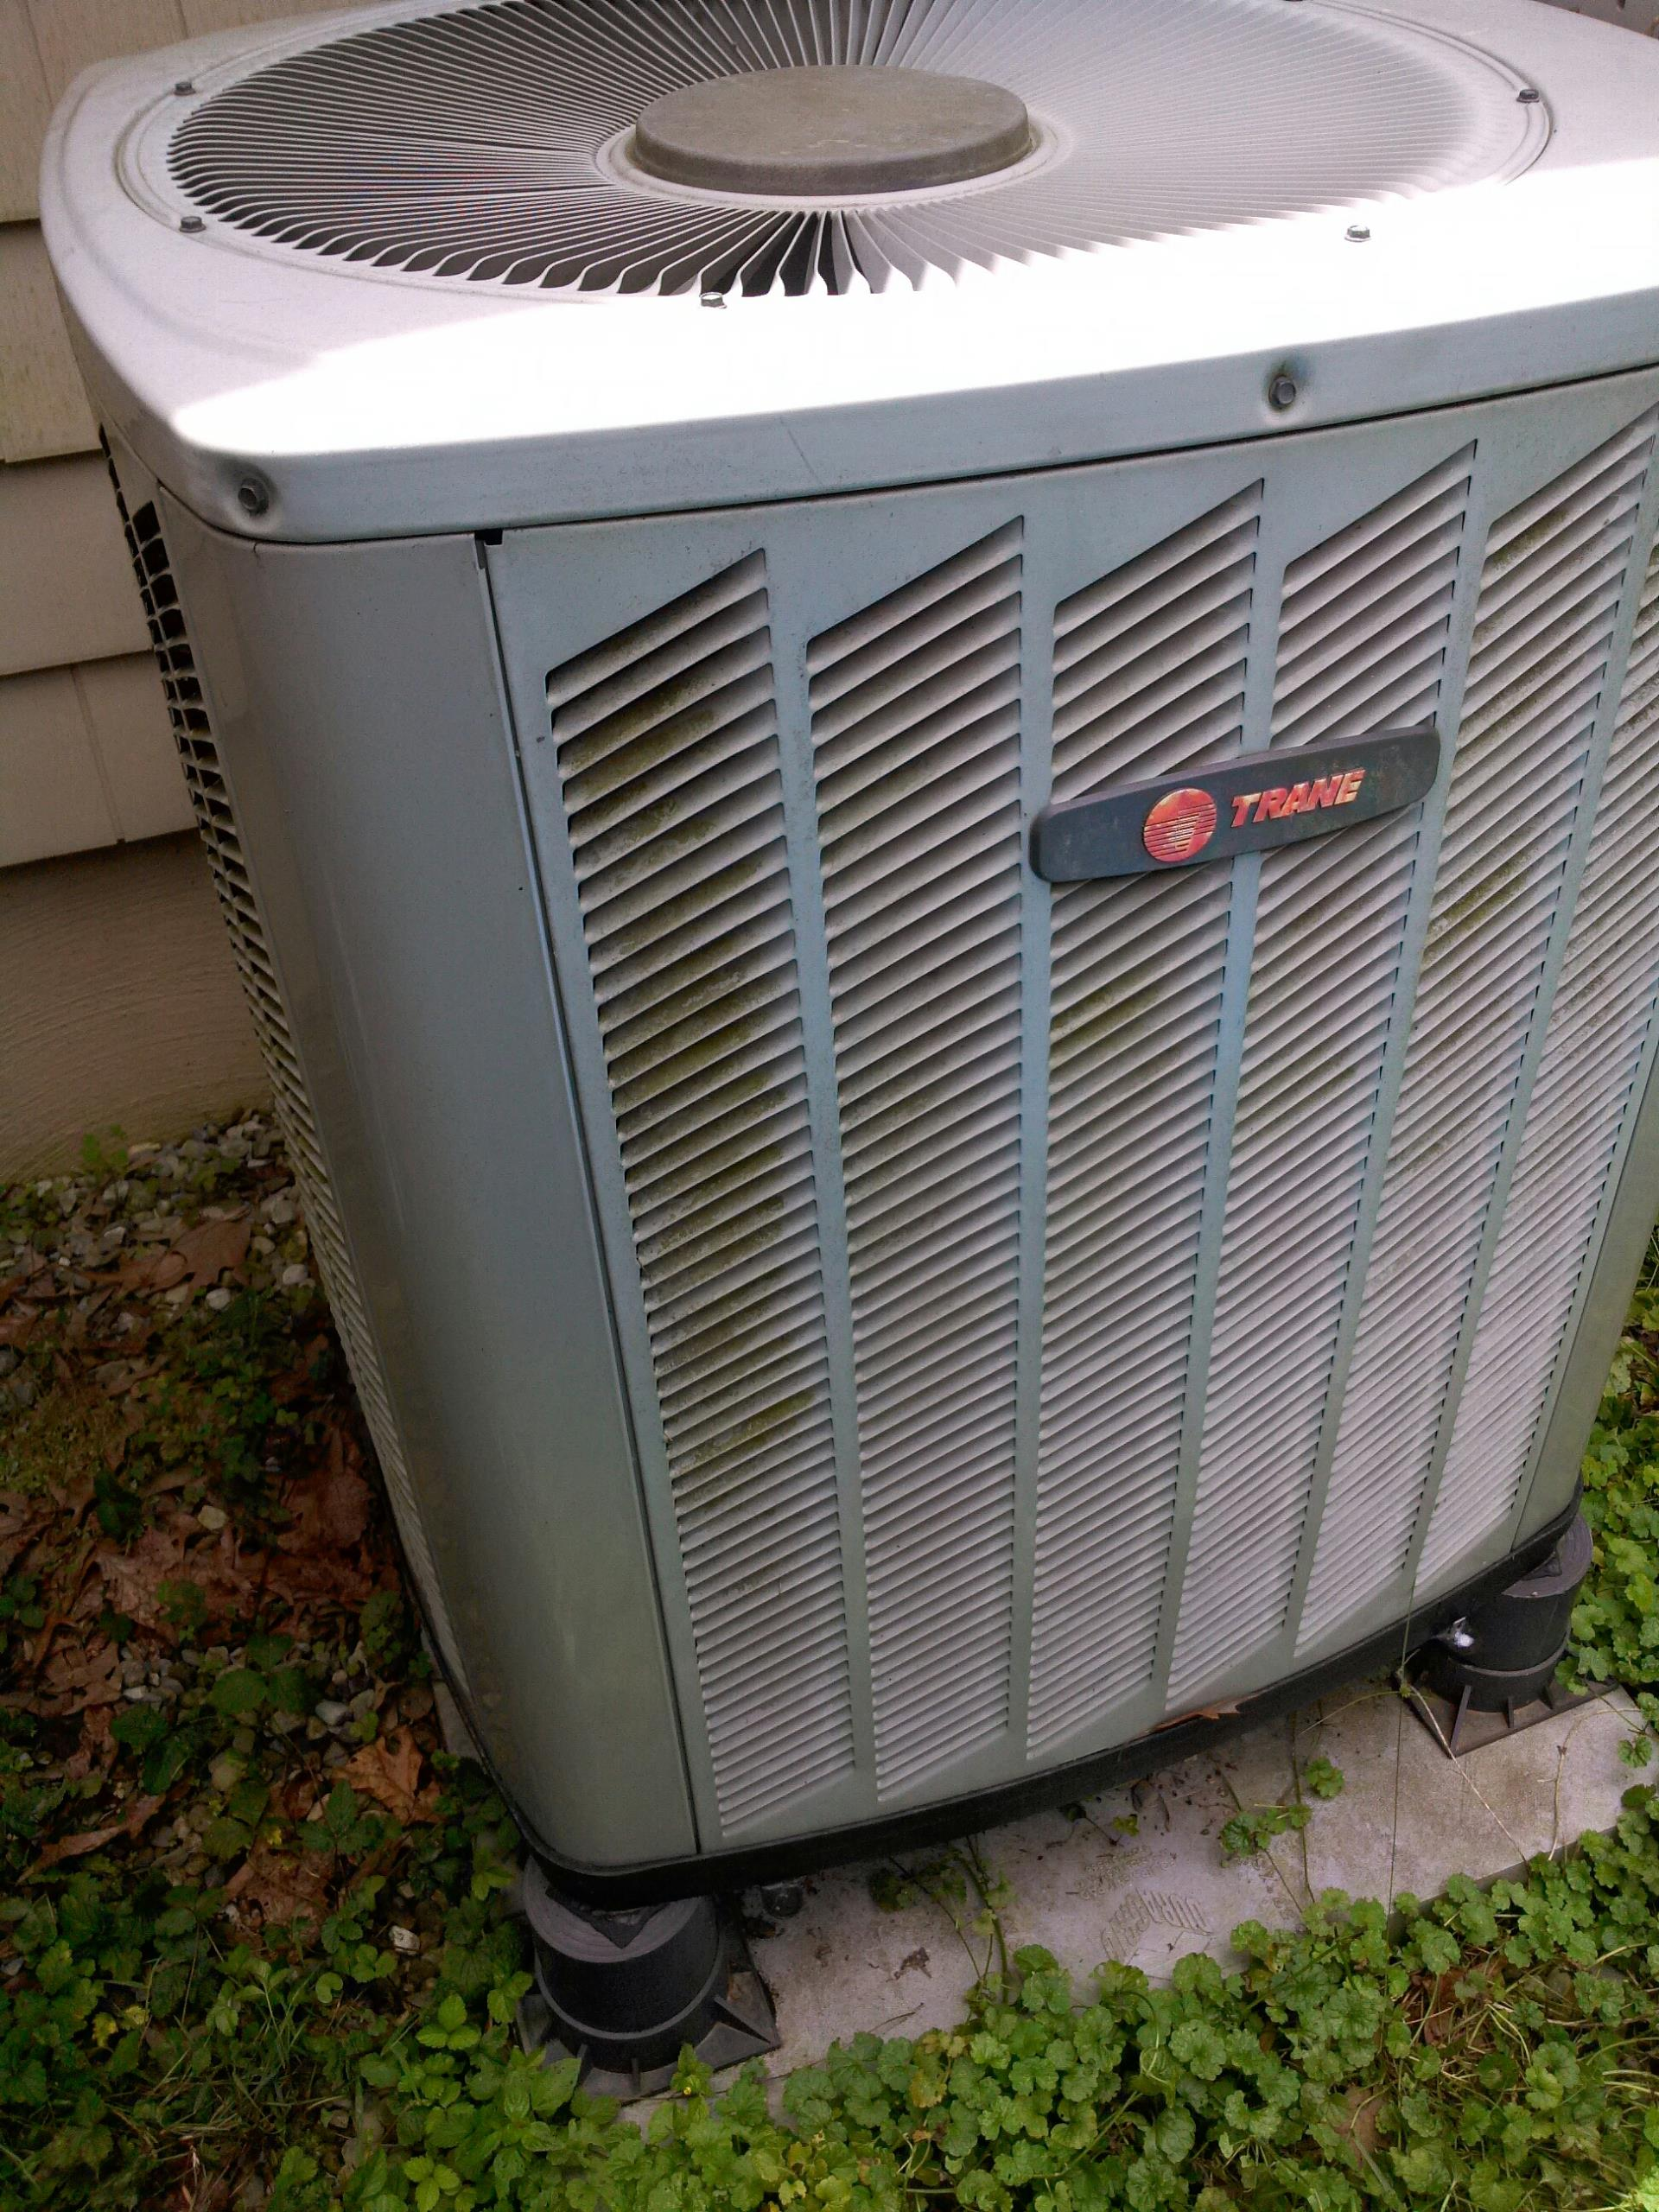 Crownsville, MD - Trane heat pump ac air conditioning & heating system installation repair service call Crownsville MD